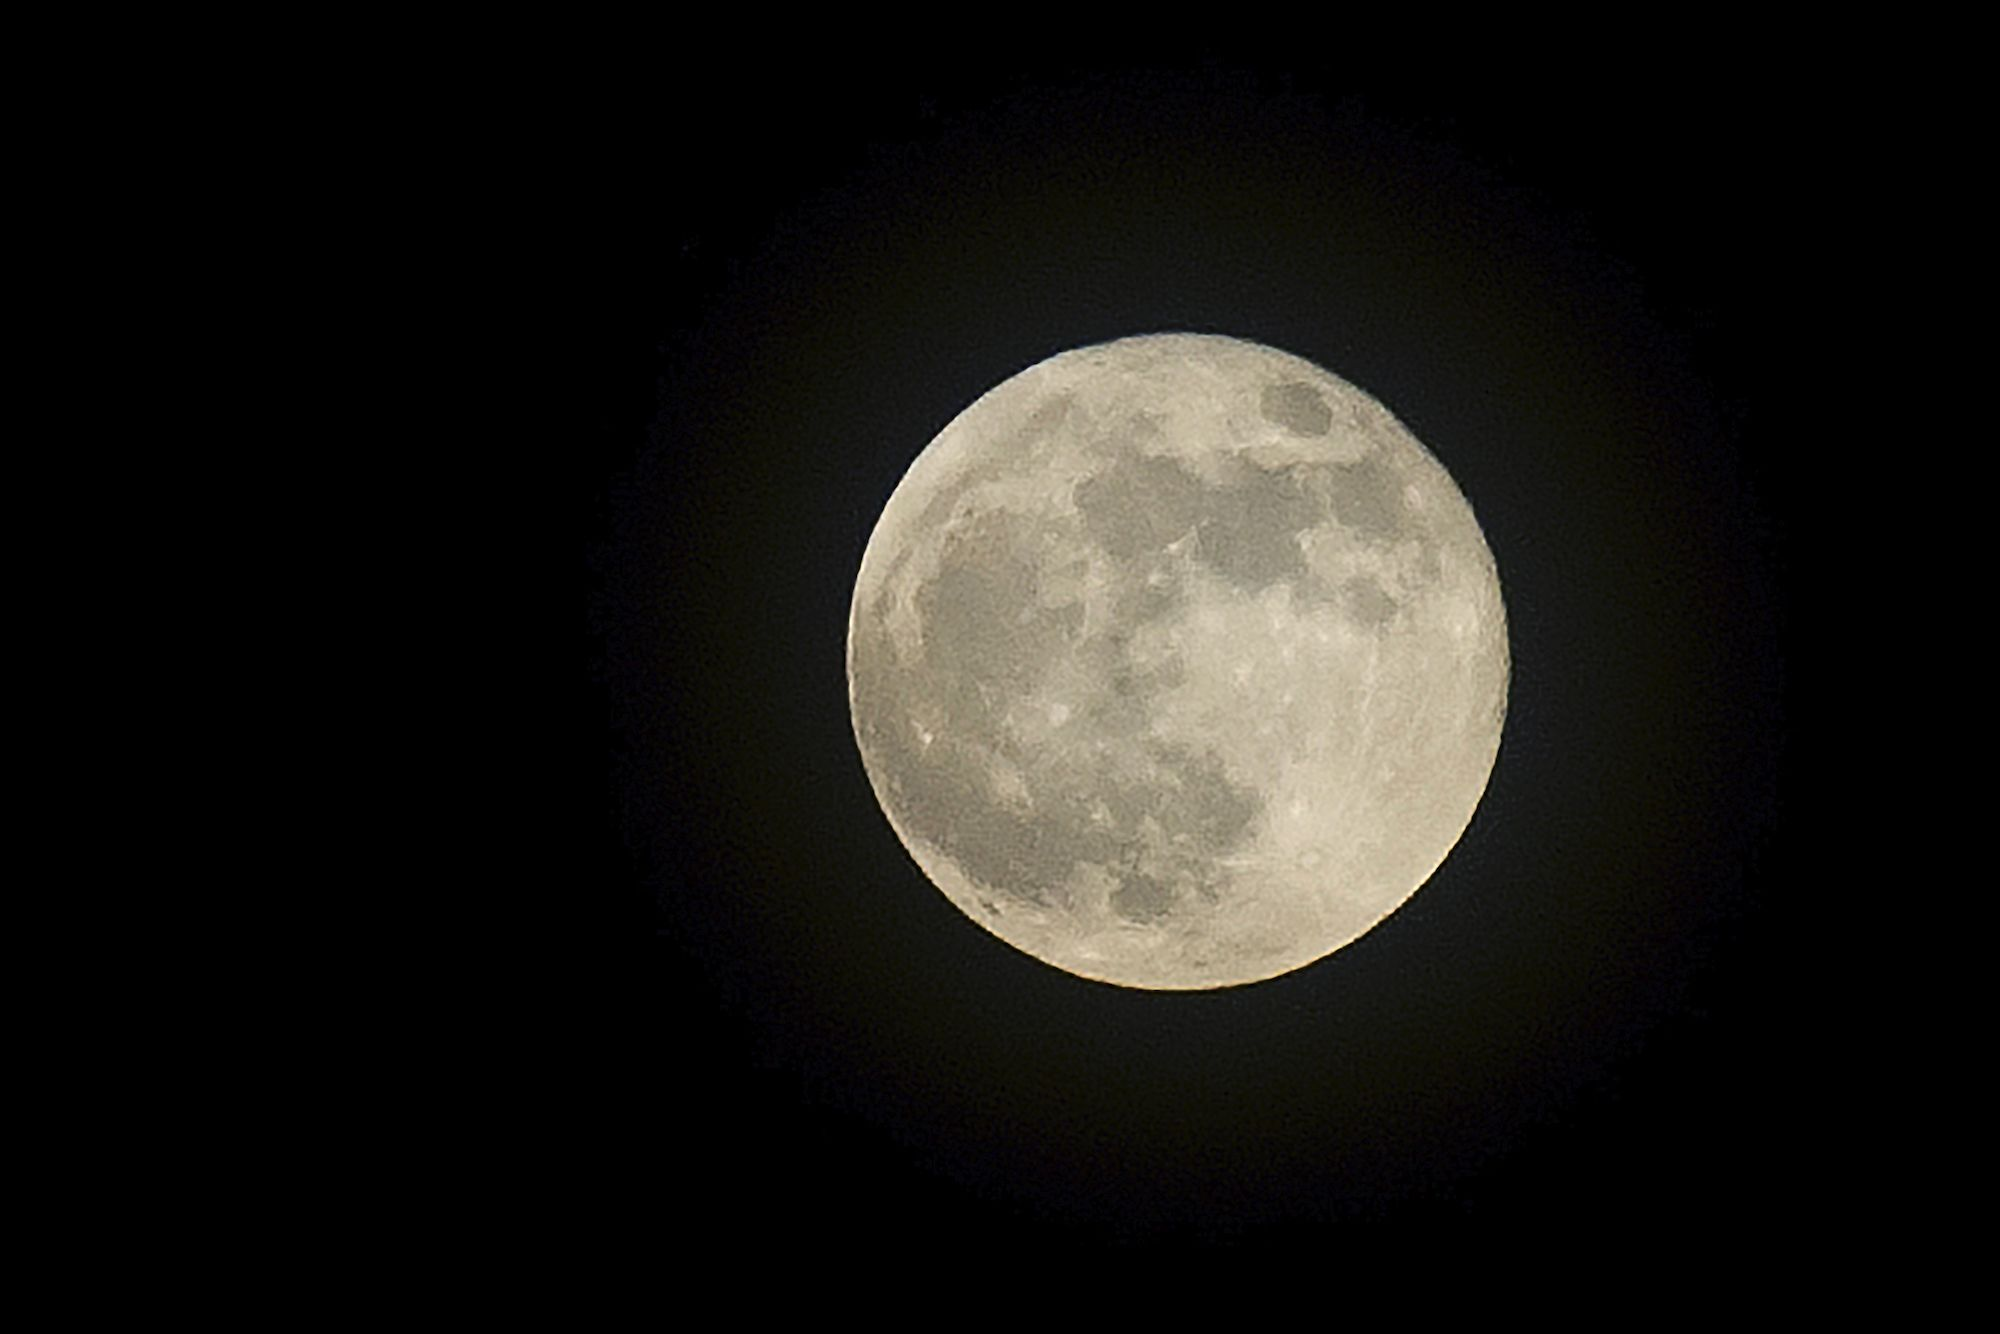 The Biggest Supermoon Of The Year Will Be On Full Display Next Week